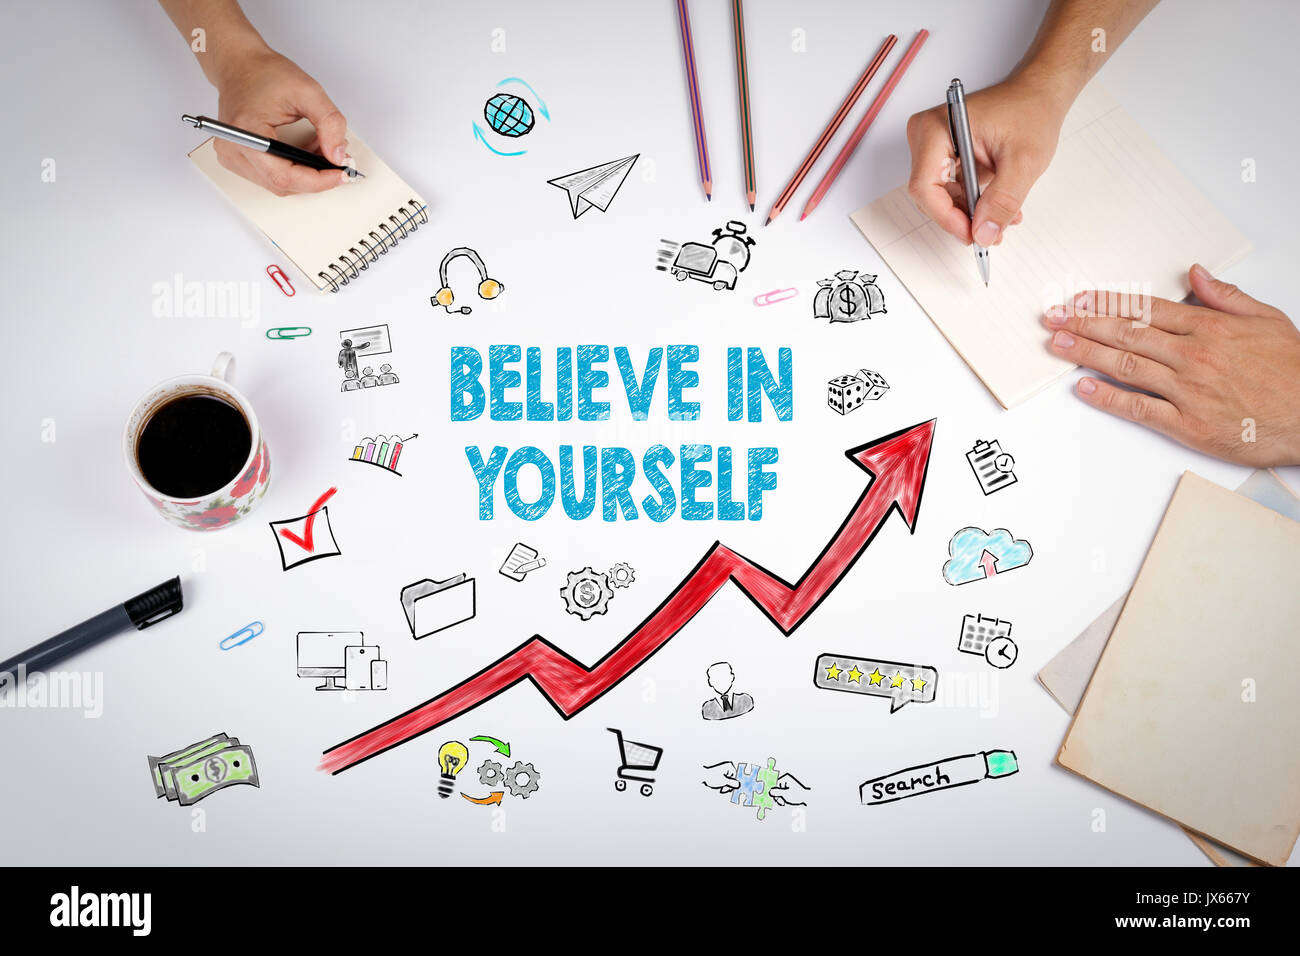 Believe In Yourself Concept. The meeting at the white office table. - Stock Image